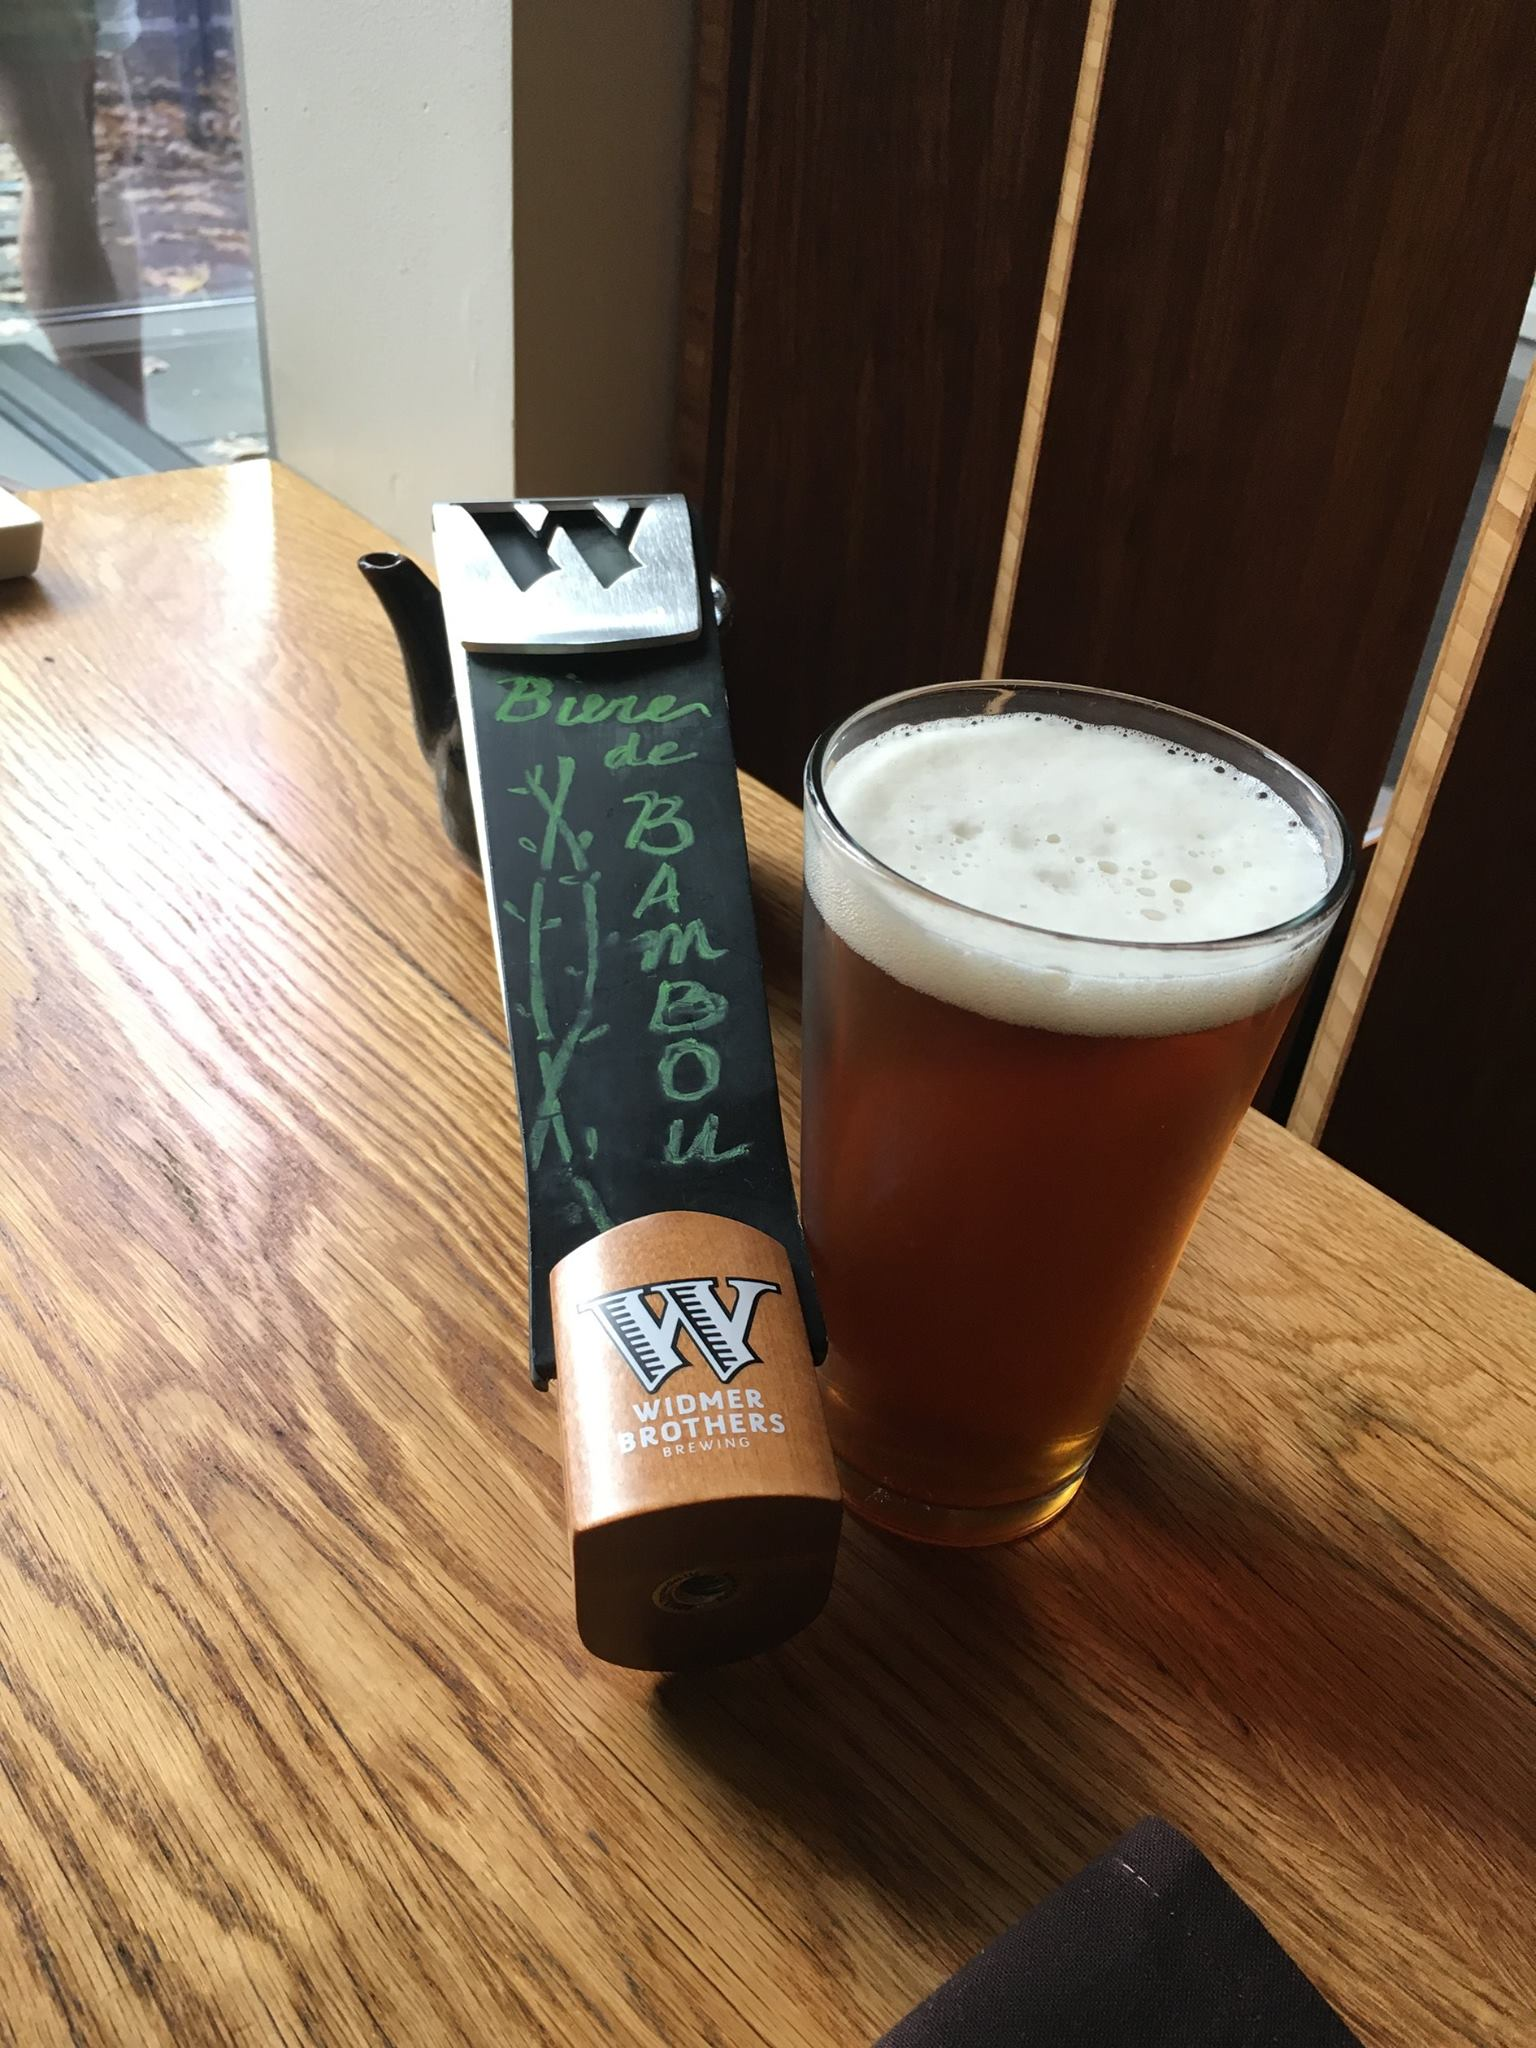 Widmer Brothers Brewing and Bamboo Sushi Biere de Bambou (photo courtesy of Widmer Brothers Brewing)